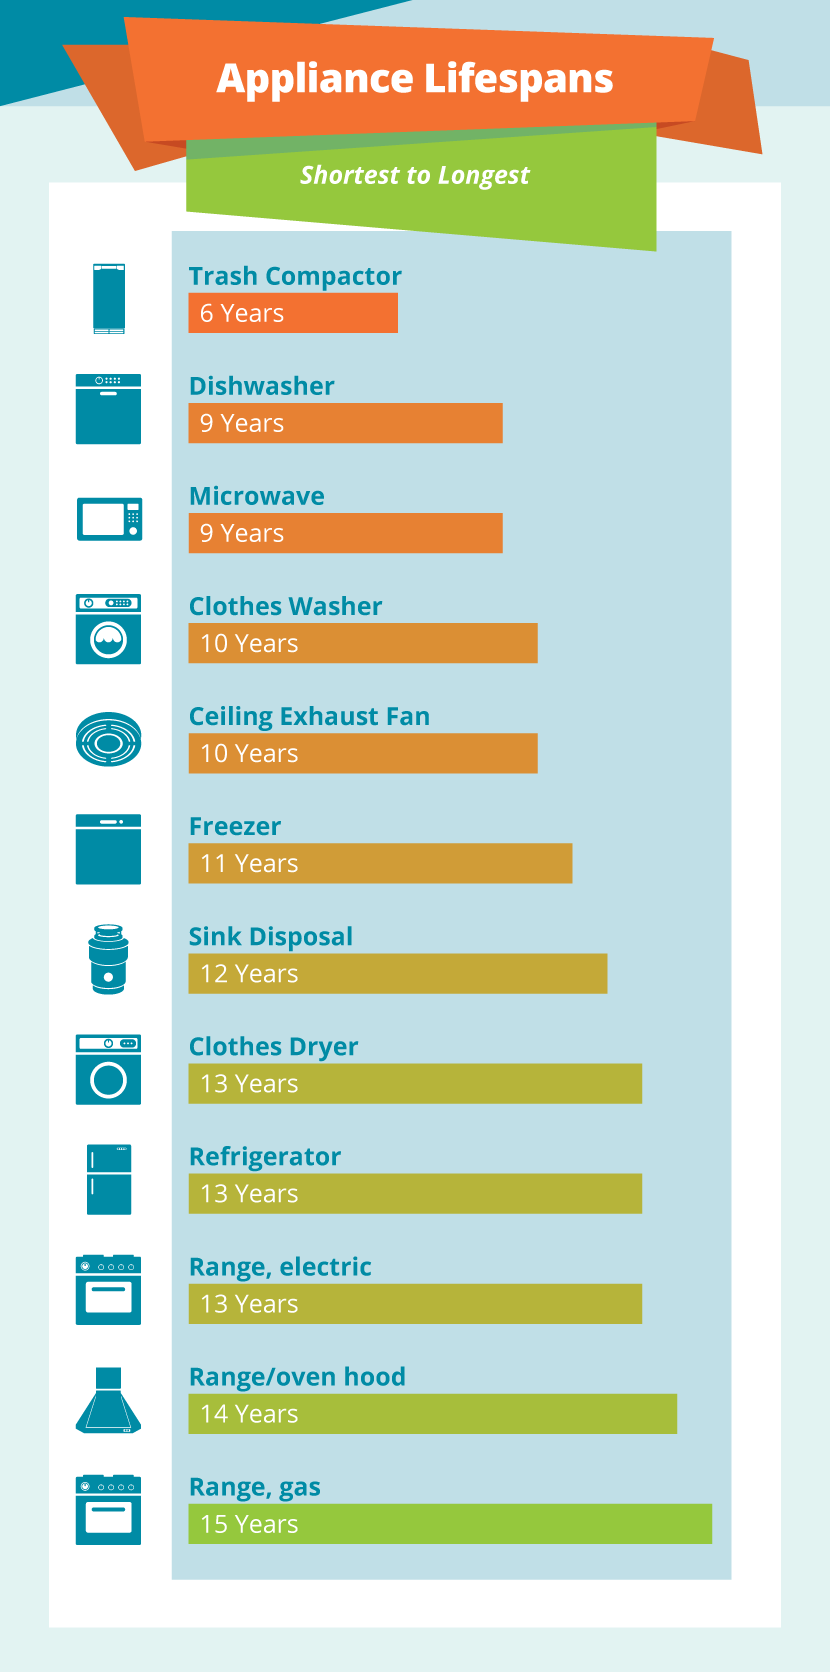 Appliance Lifespans - The Definitive Guide to Repair, Replace, and Recycle